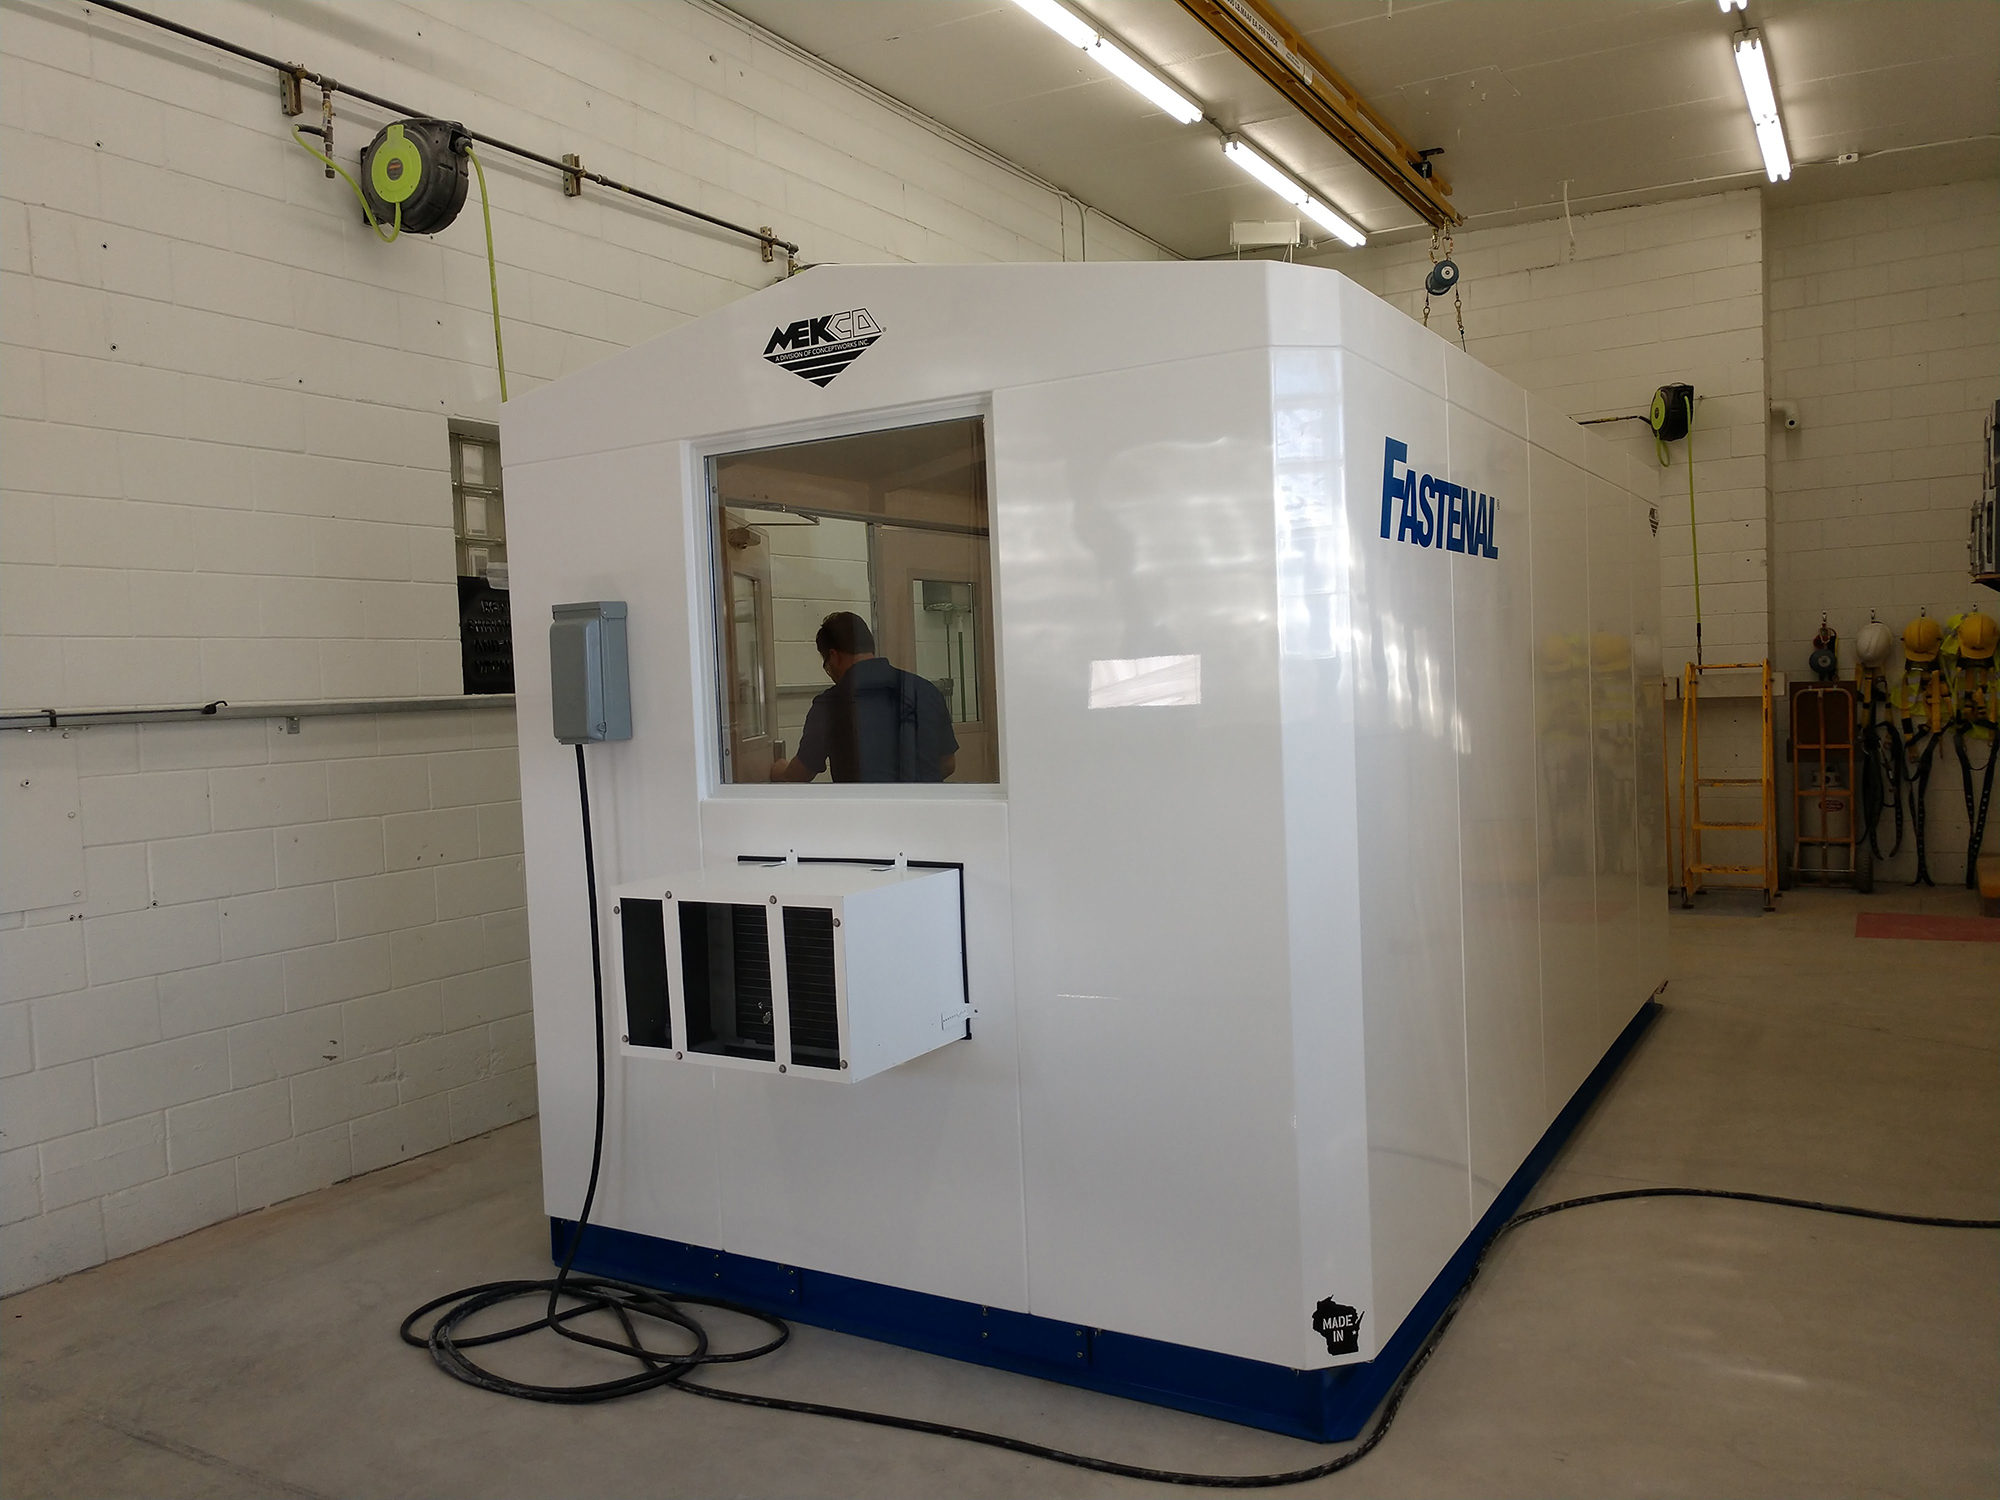 Mekco Onsite System - Exterior Side View